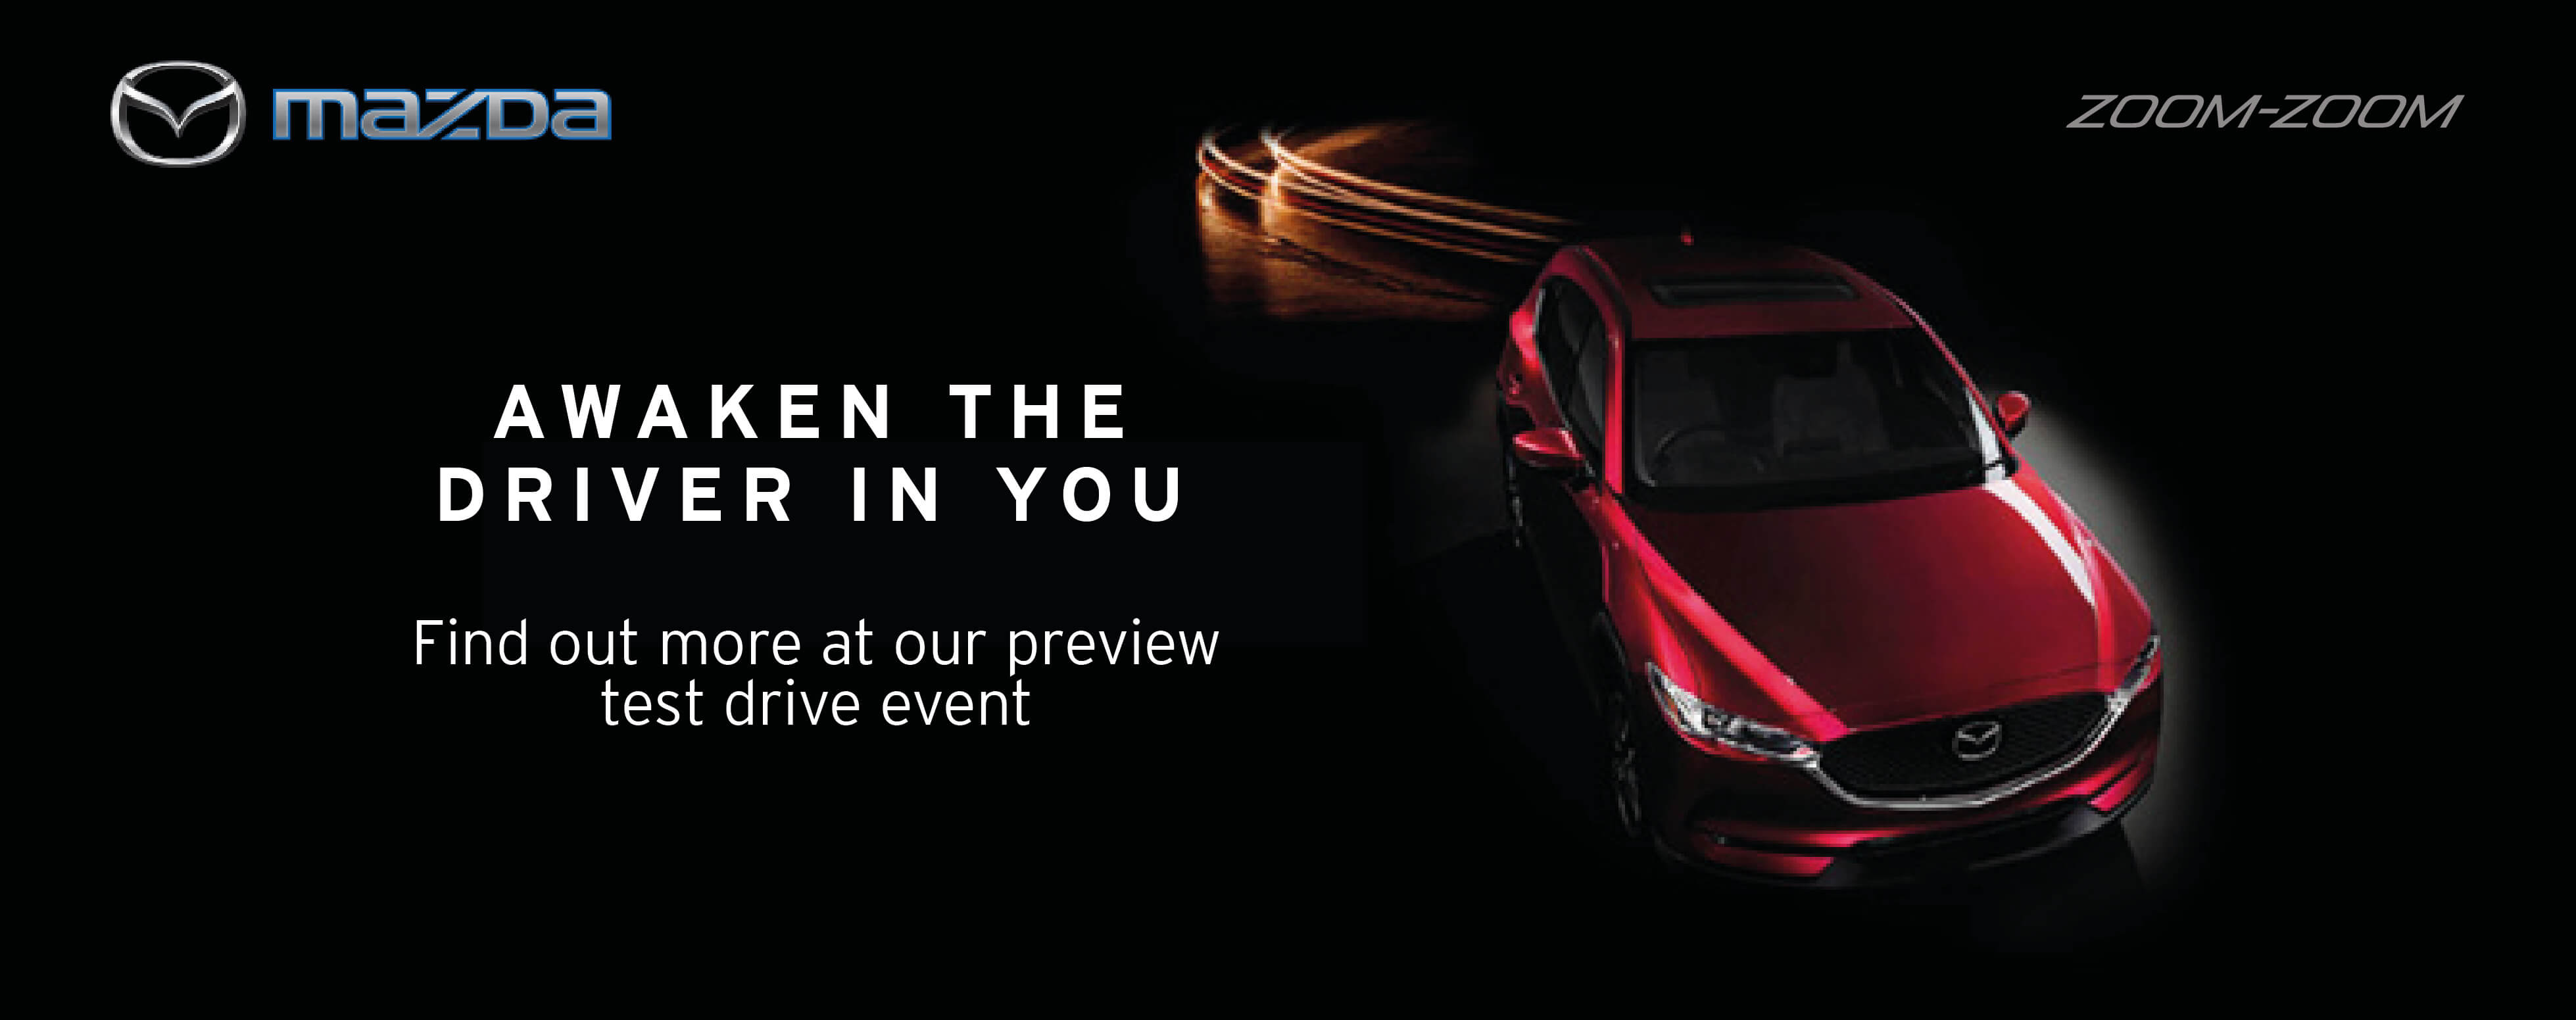 all express revealed auto new mazda grille front